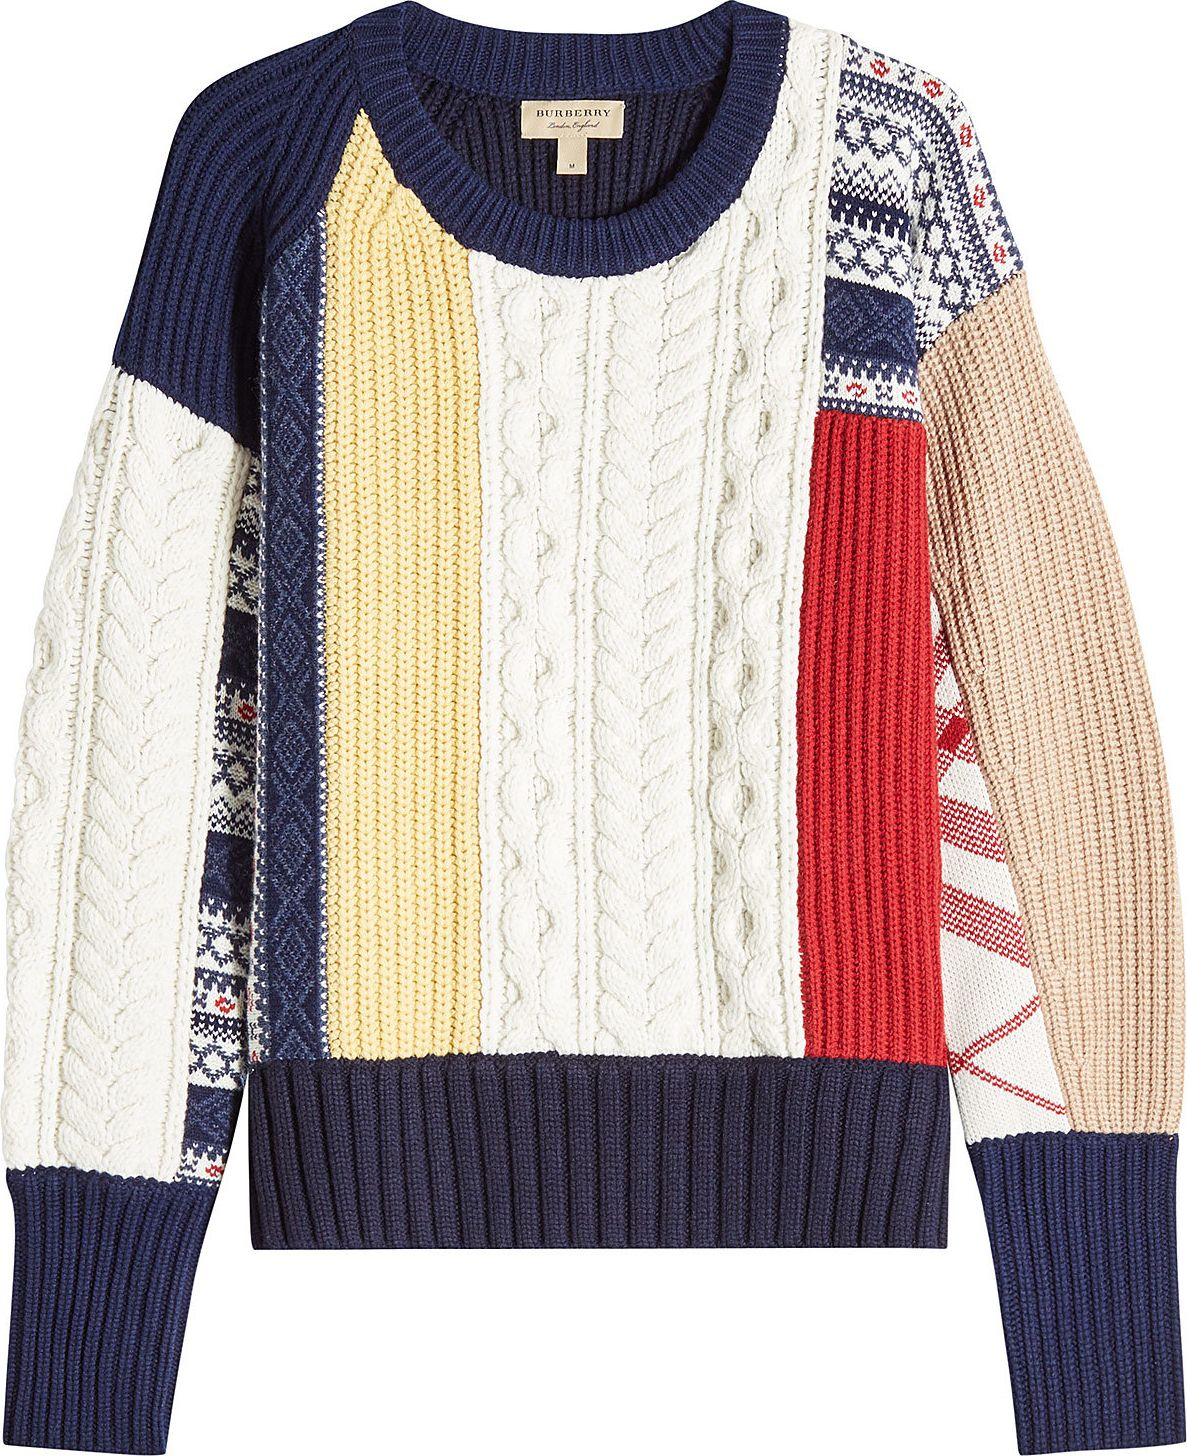 Burberry London England - Wool Pullover with Cashmere